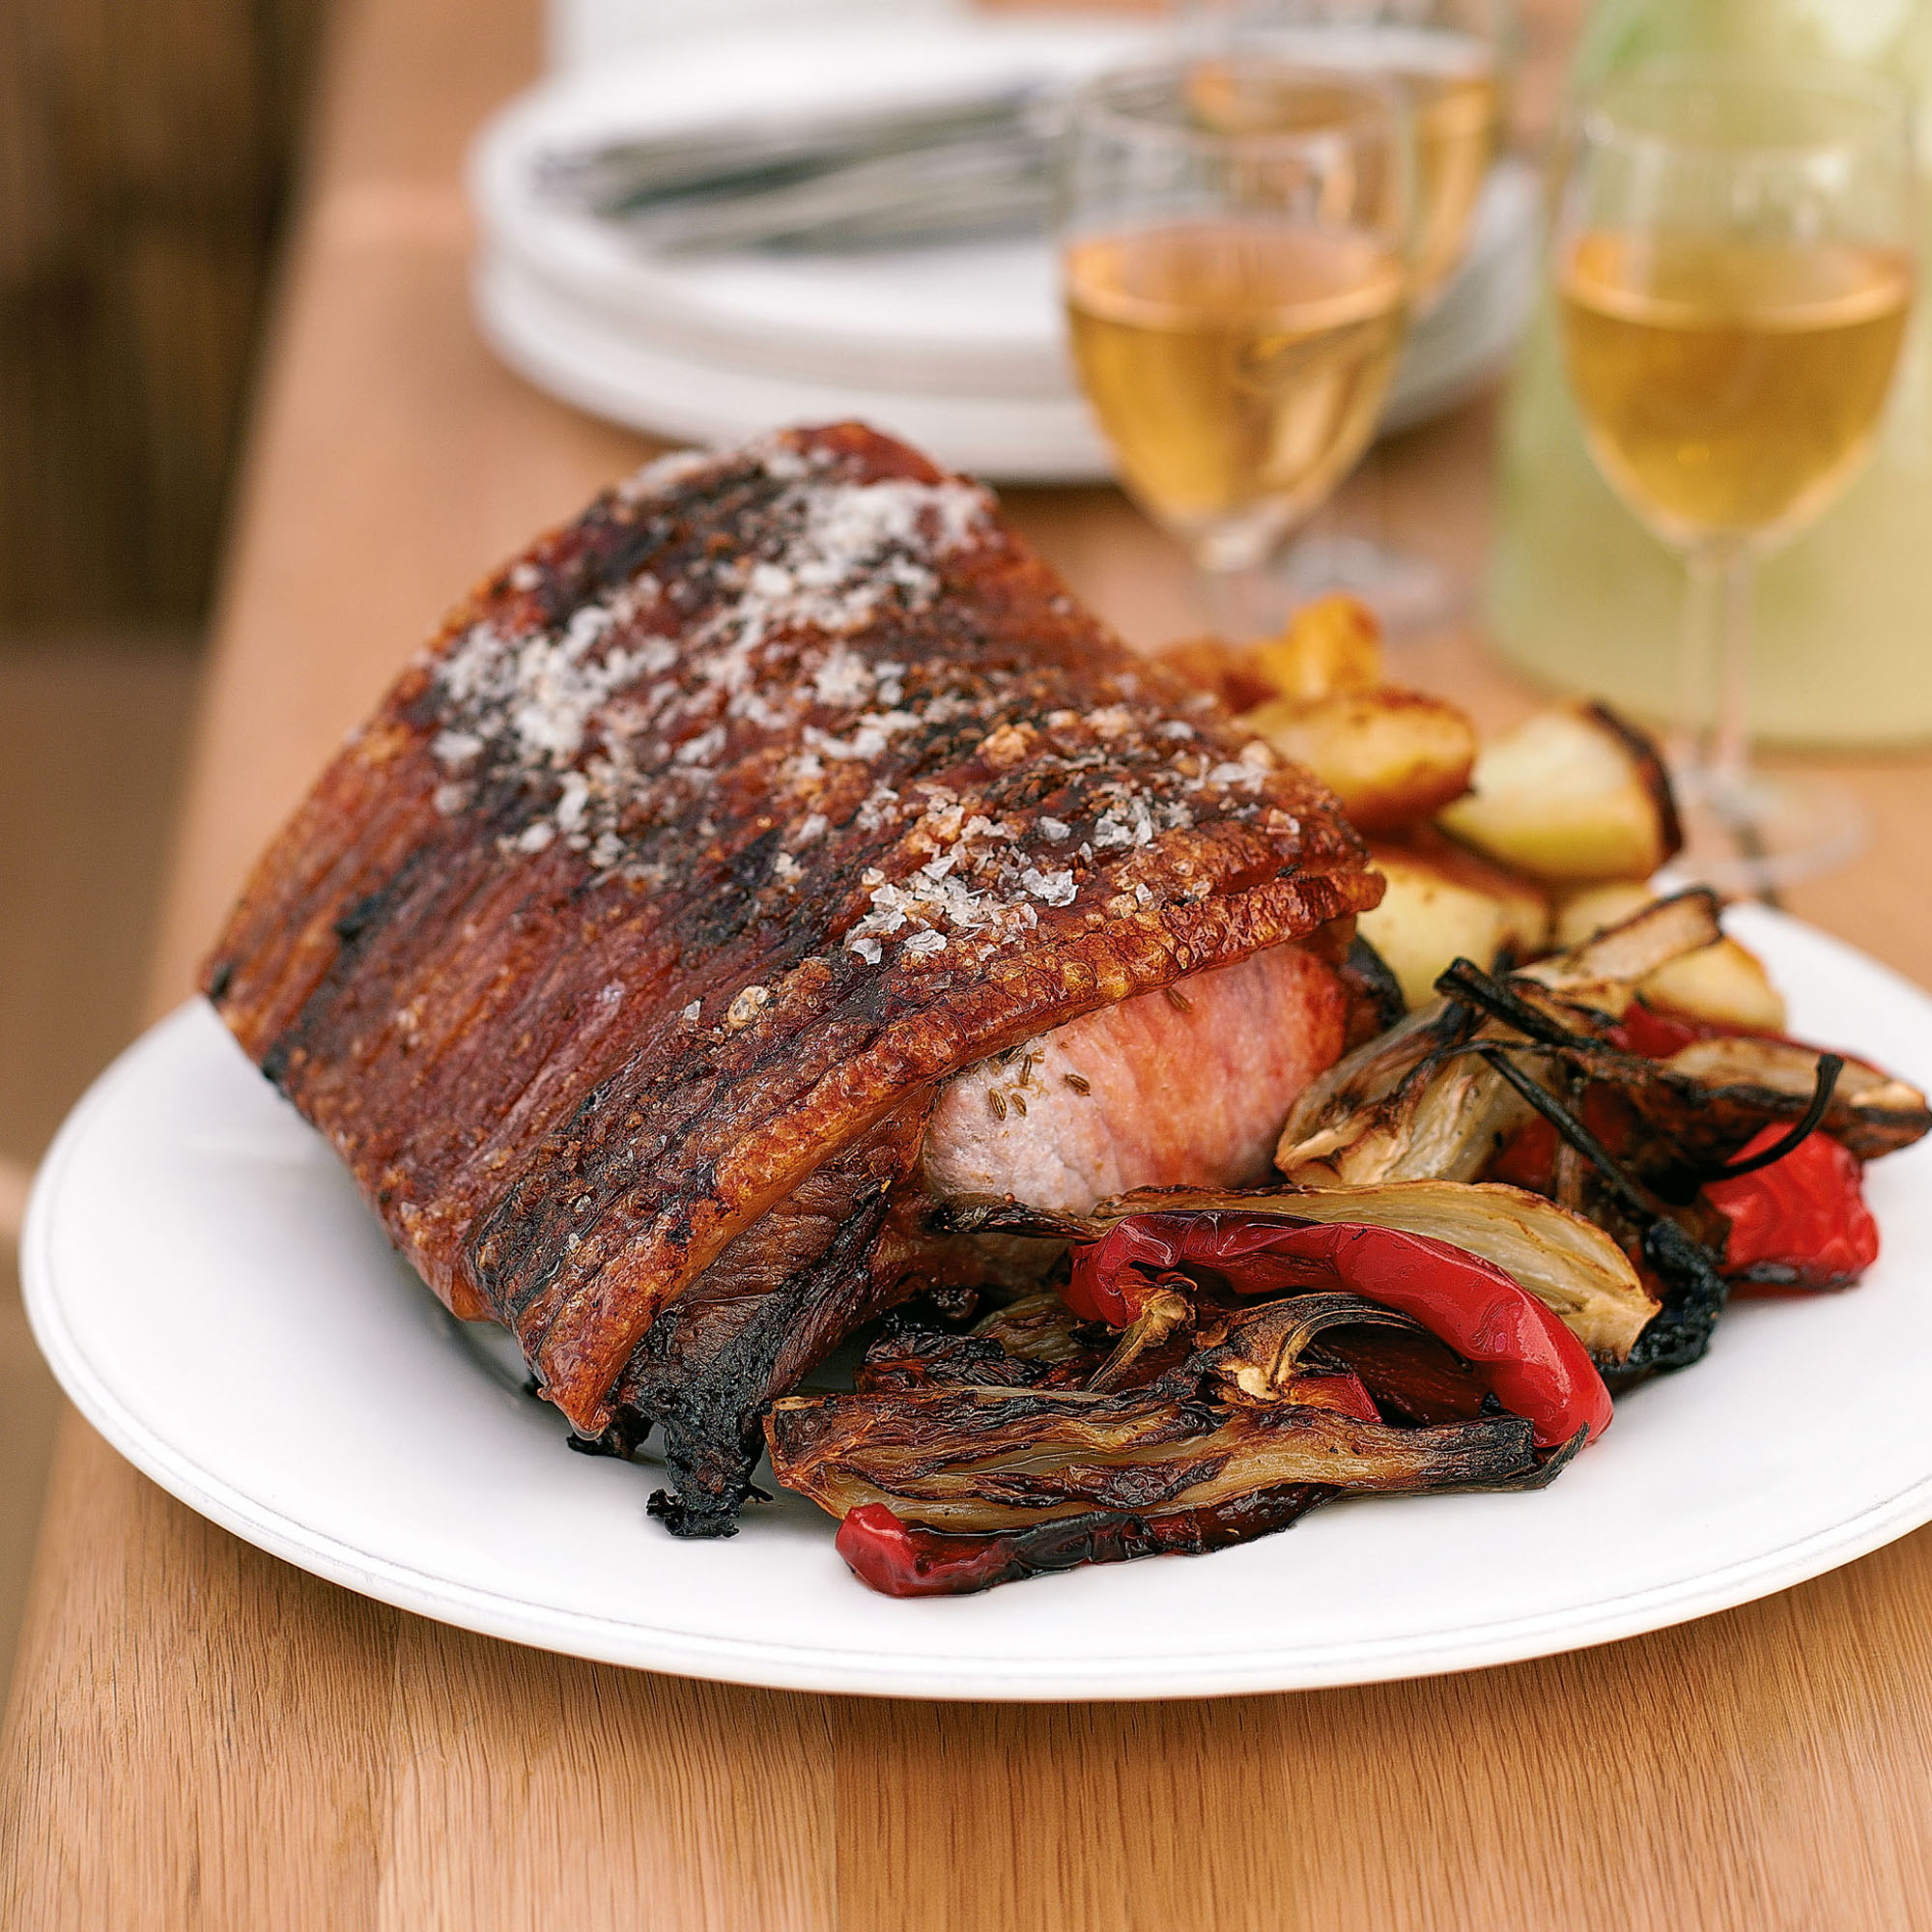 Watch Loin of Pork with Crackling and Roasted Fennel Recipe video